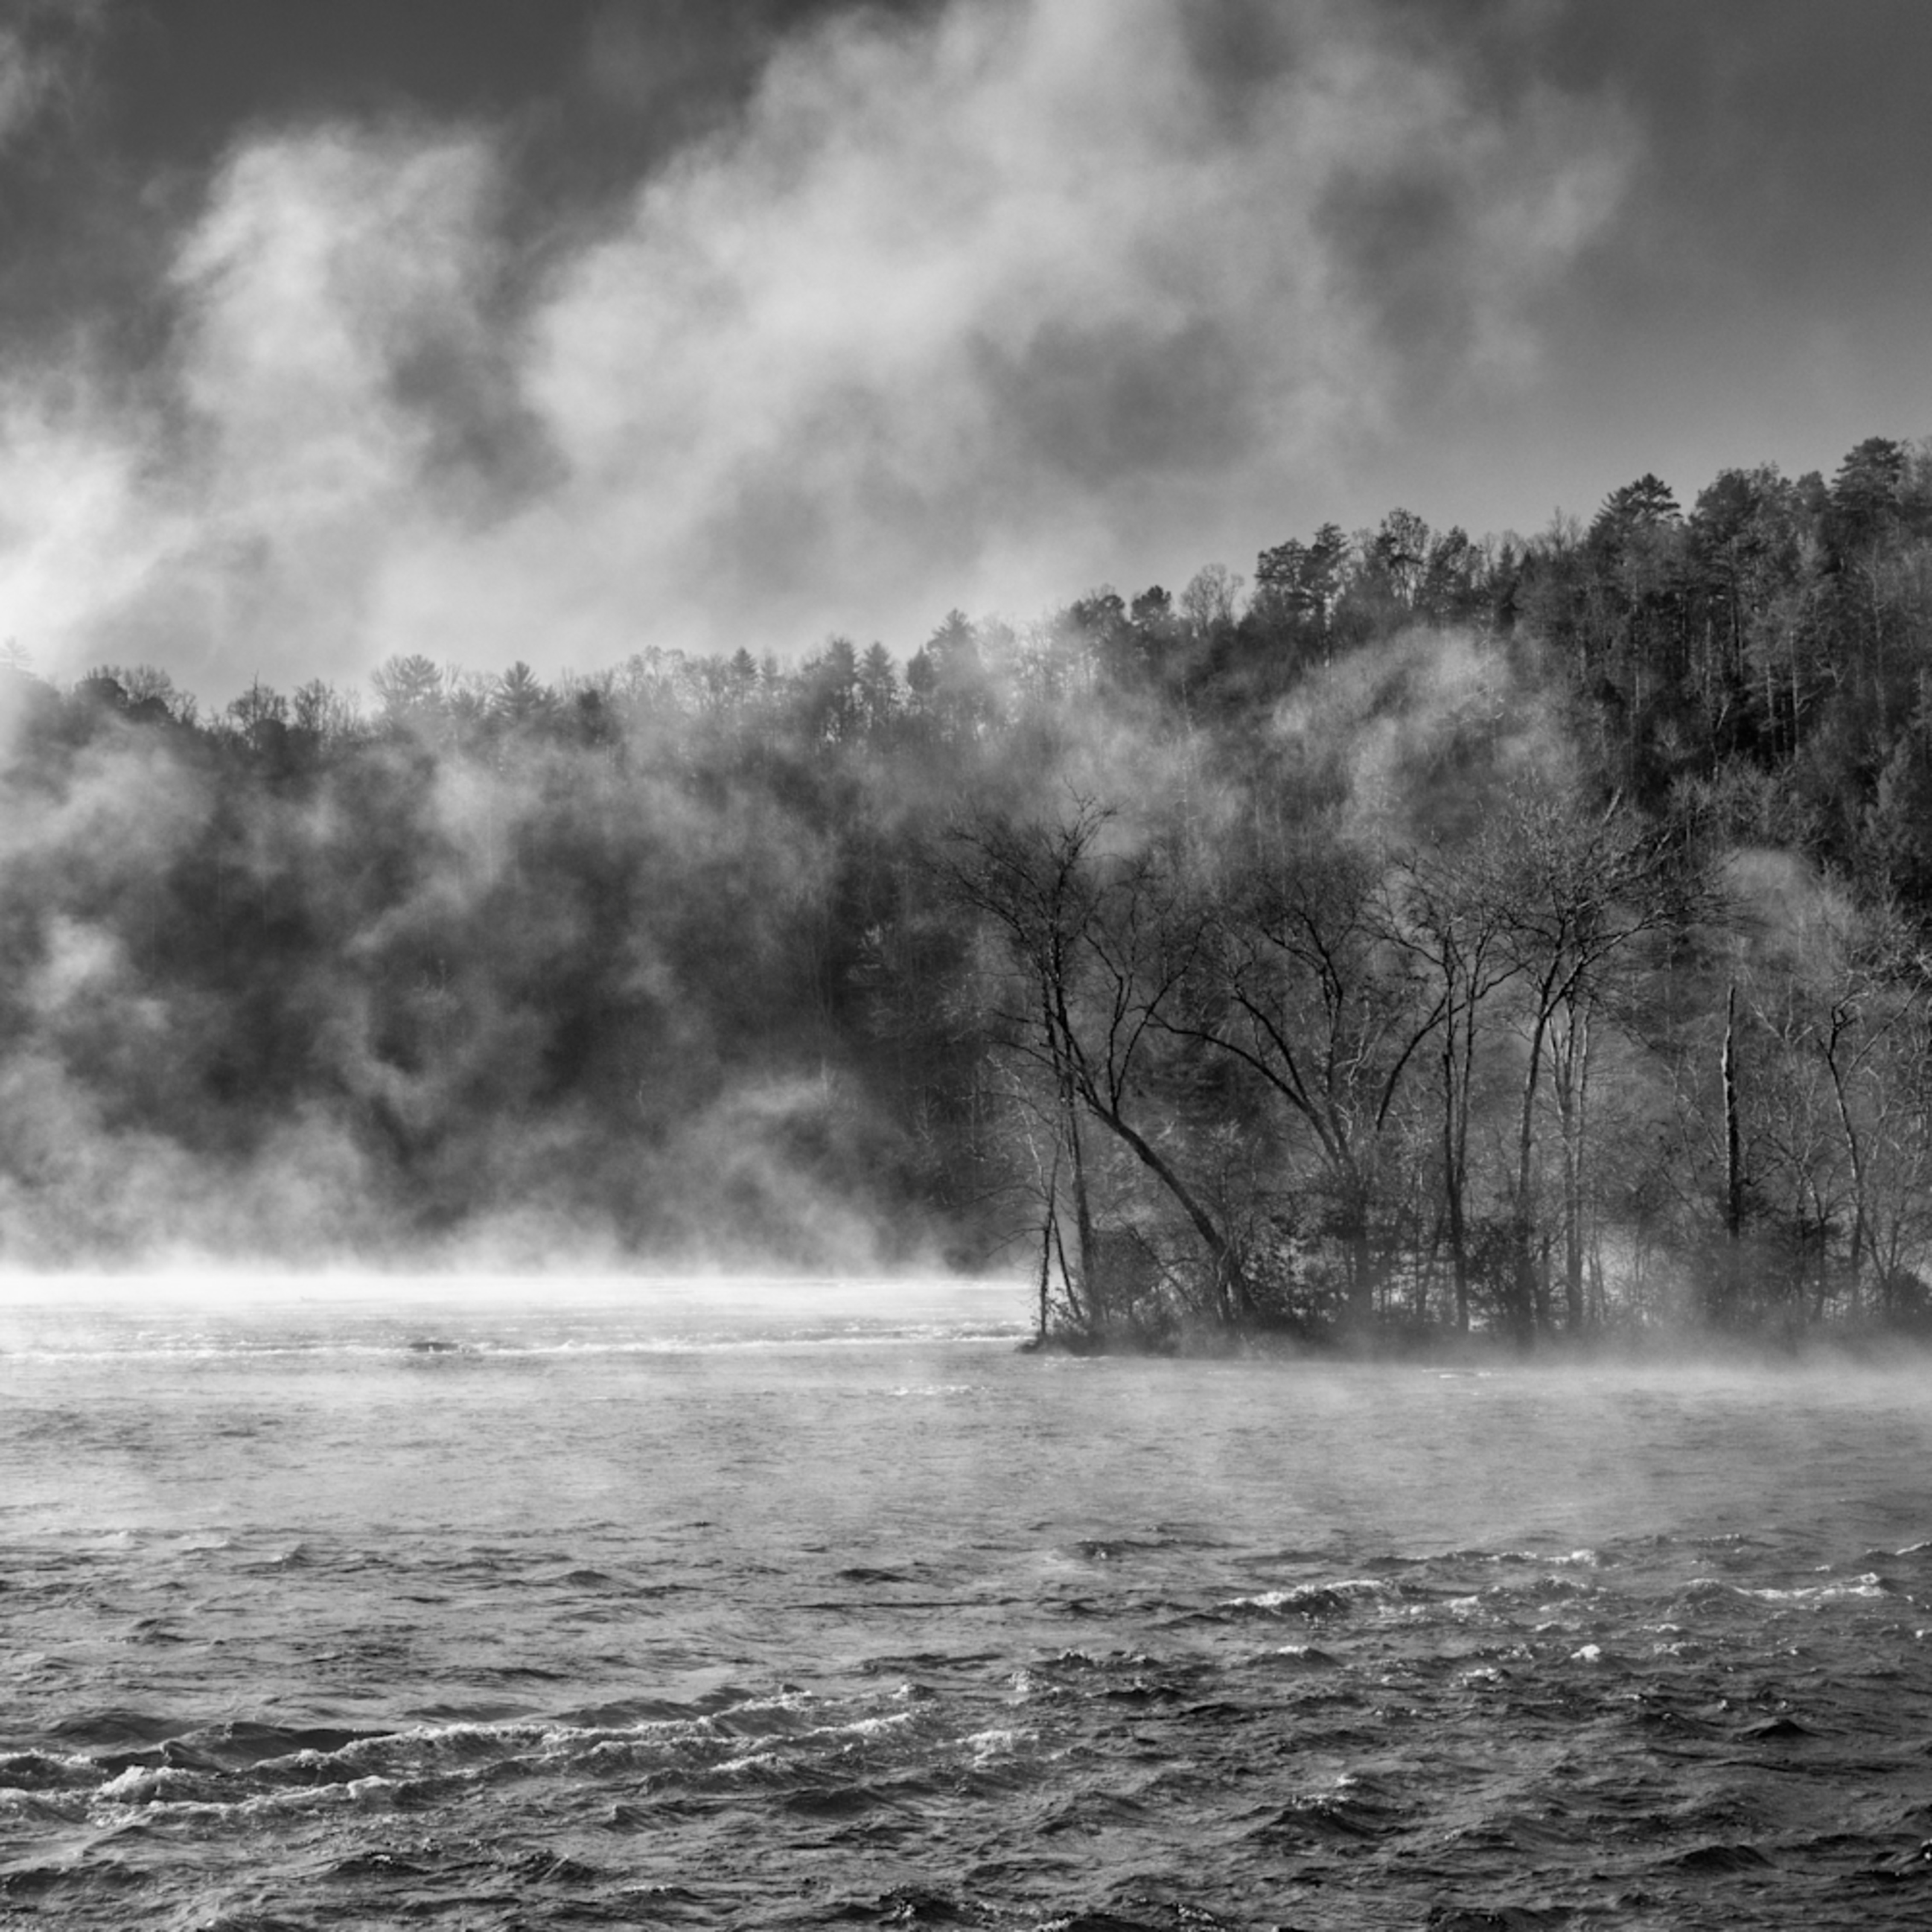 Andy crawford photography hiawassee river mists in black and white p3ttrg